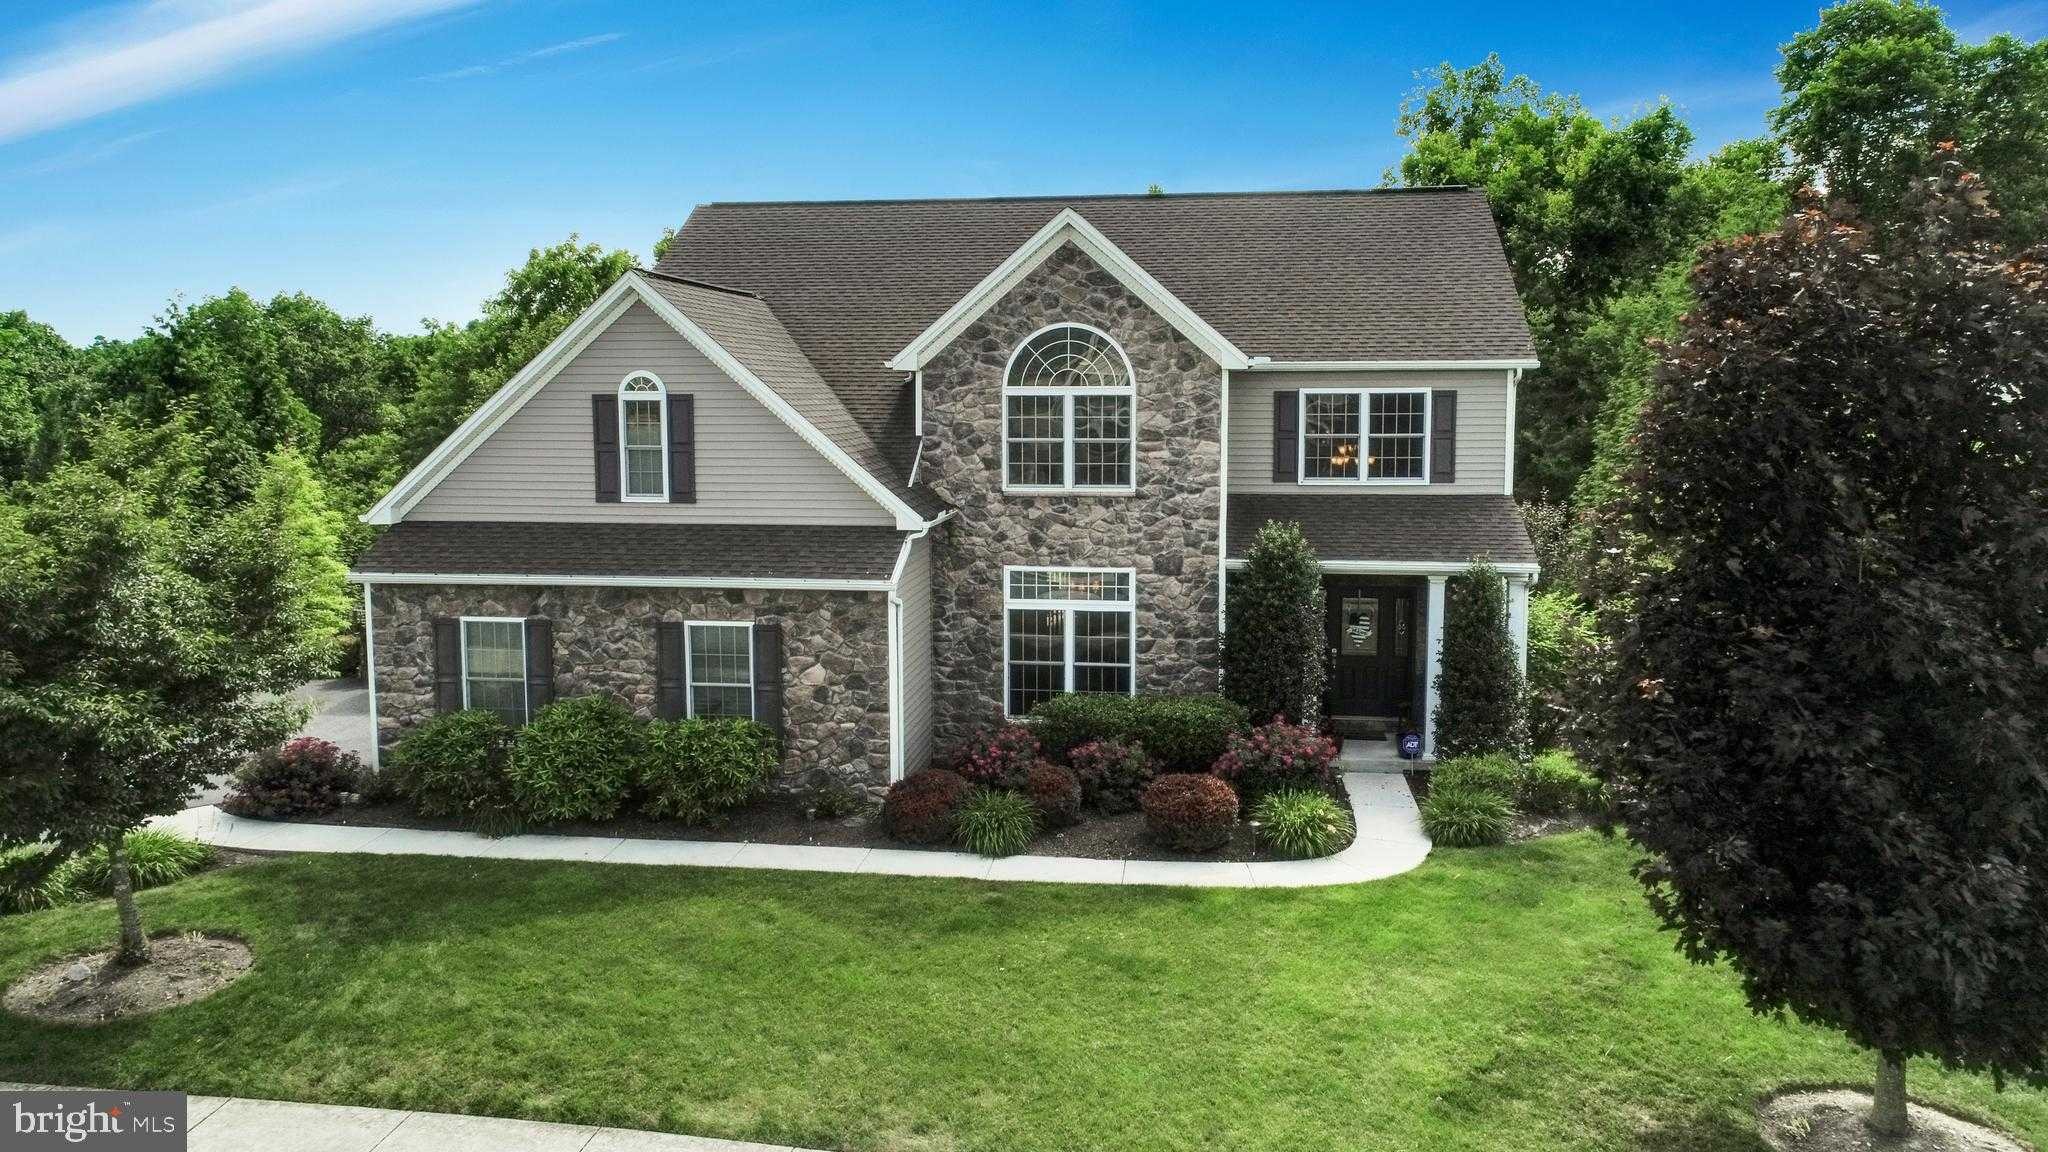 $479,900 - 5Br/4Ba -  for Sale in Silver Brook, Mechanicsburg